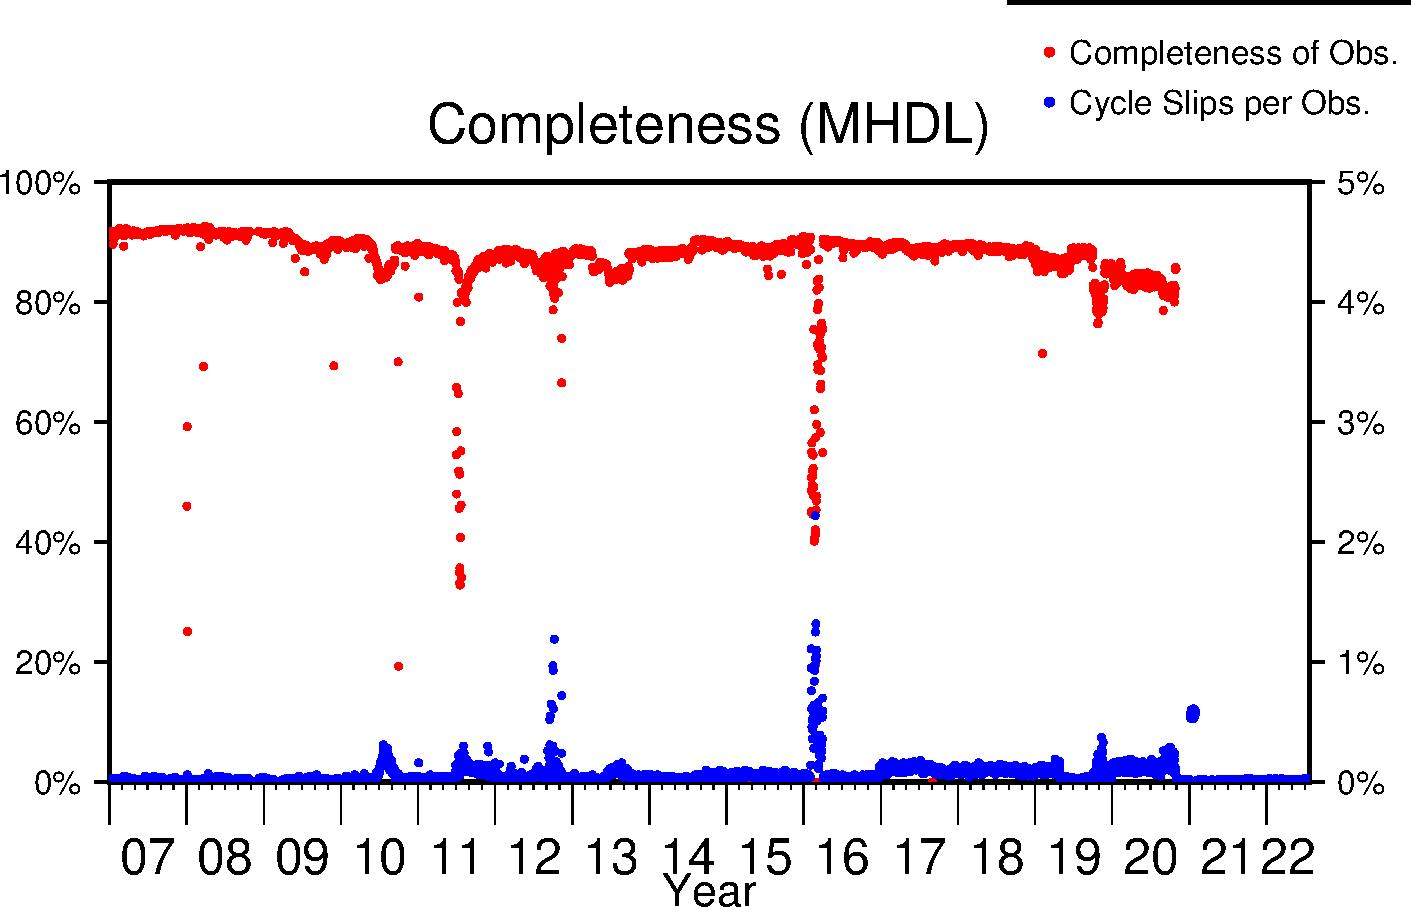 MHDL completeness lifetime